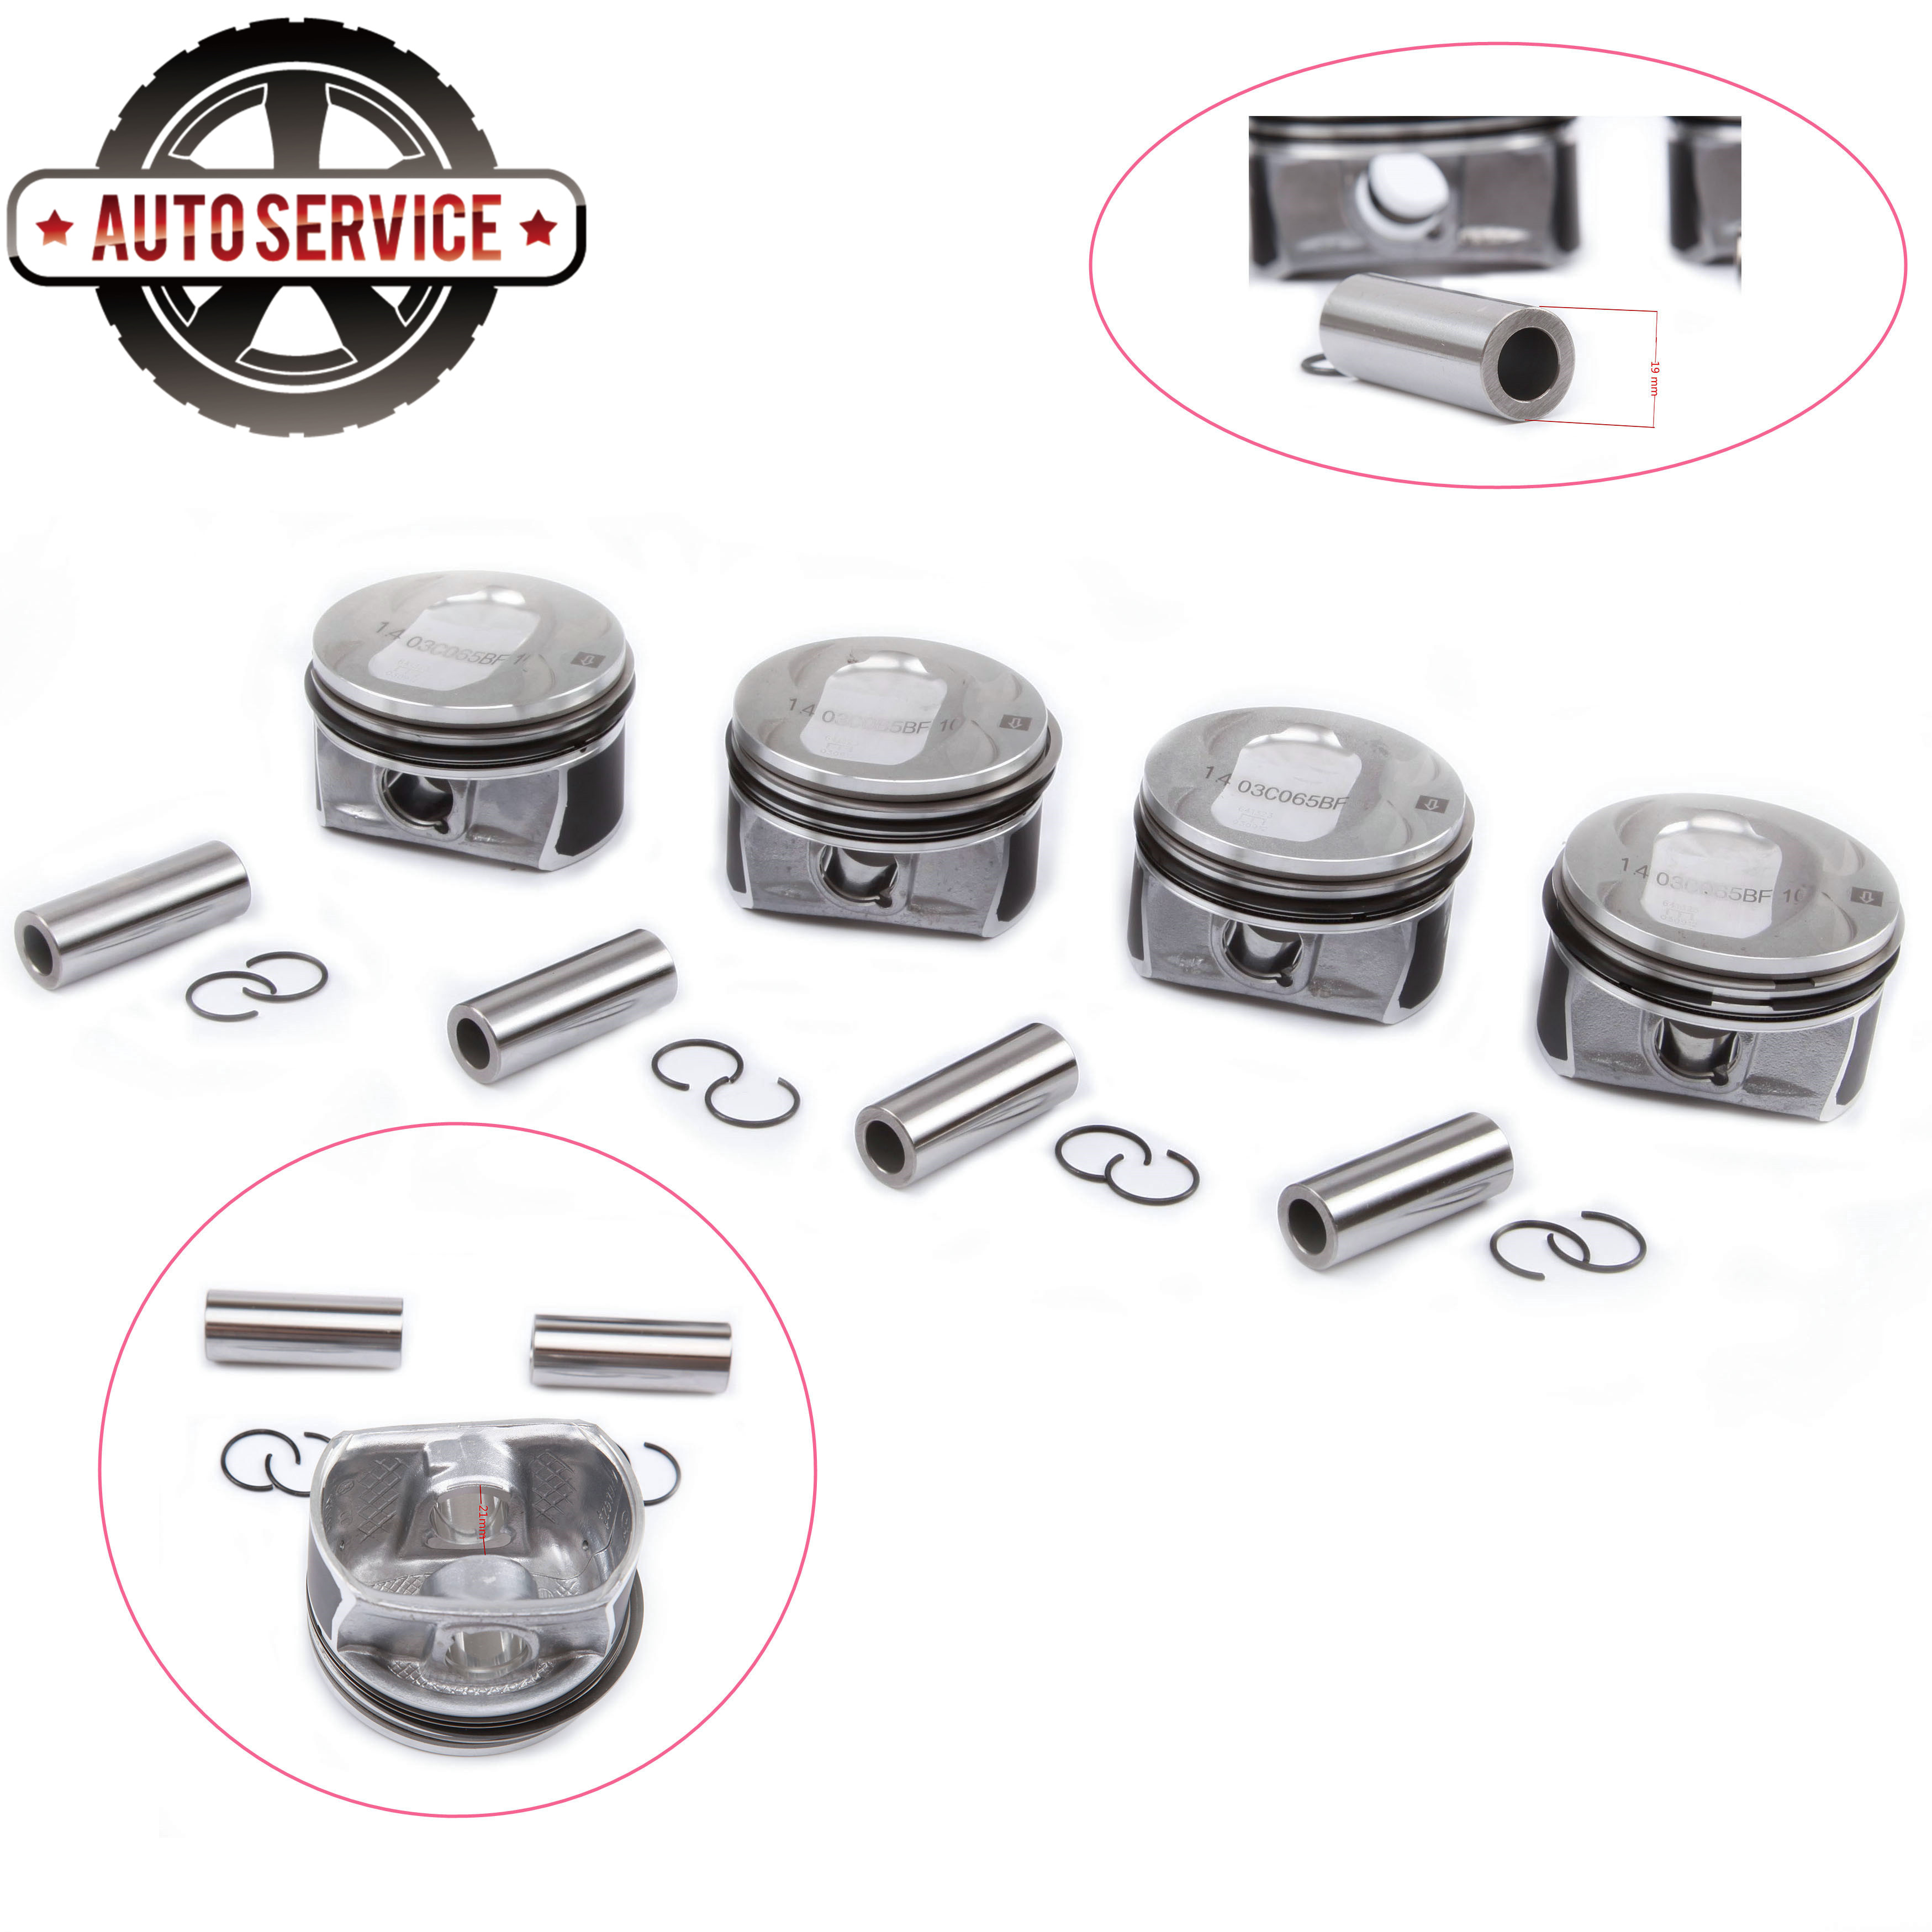 NEW 03C 107 065 BF 1.4T Twin Turbocharger Piston & Rings For Audi A1 VW Golf Jetta MK5 6 Tiguan Beetle Passat B7 Pin 19mm 76.5mm|Pistons  Rings  Rods & Parts| |  - title=